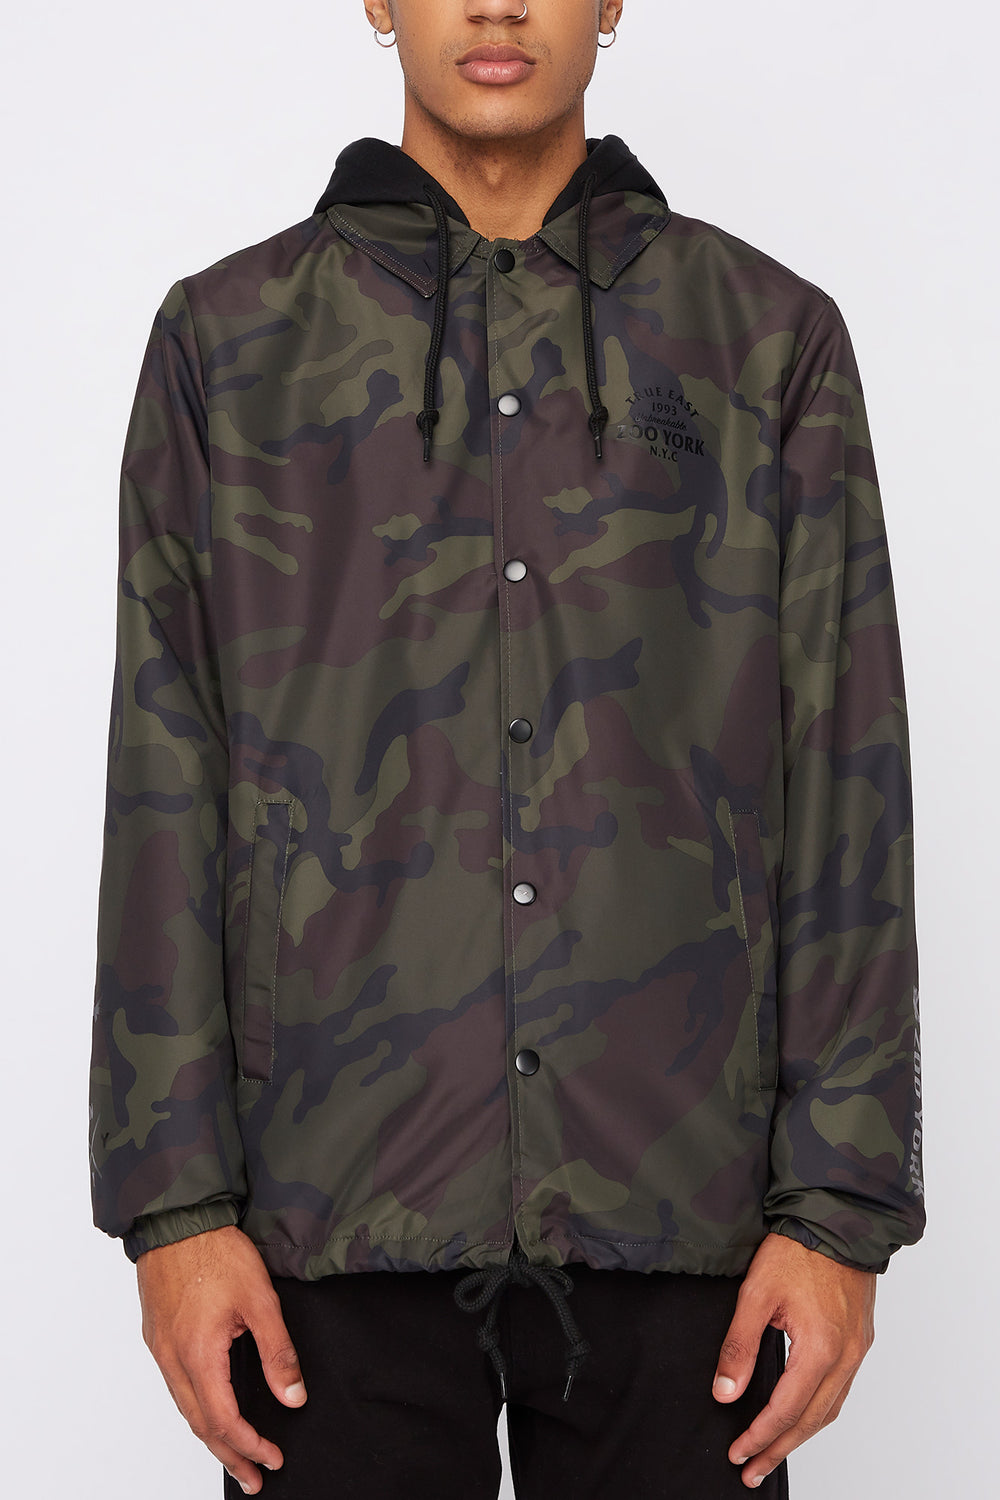 Zoo York Mens Snap-Button Hooded Jacket Camouflage